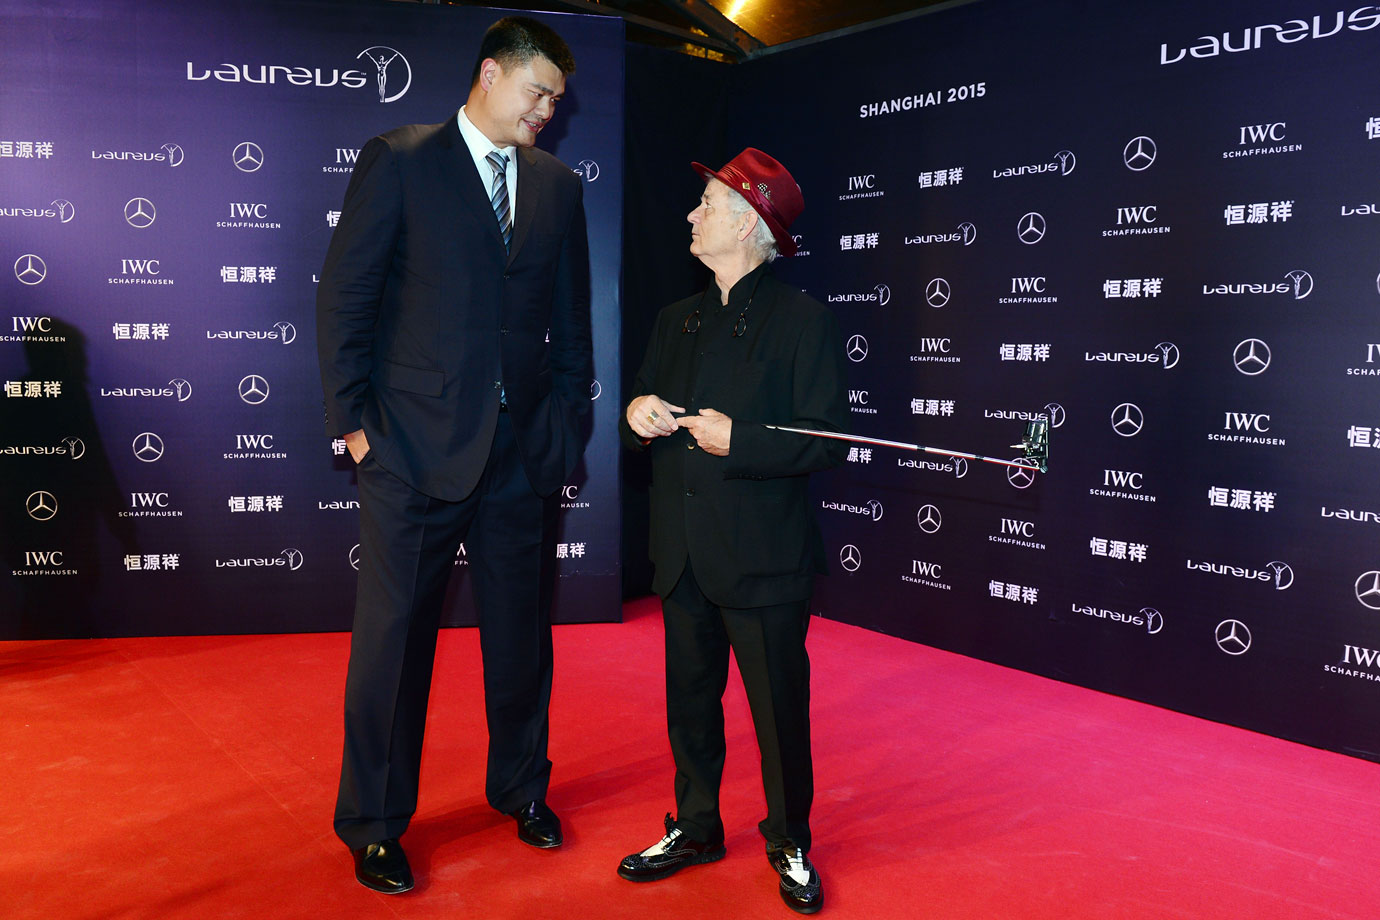 Yao Ming and Bill Murray attend the Laureus World Sports Awards on April 15, 2015 at Shanghai Grand Theatre in Shanghai, China.